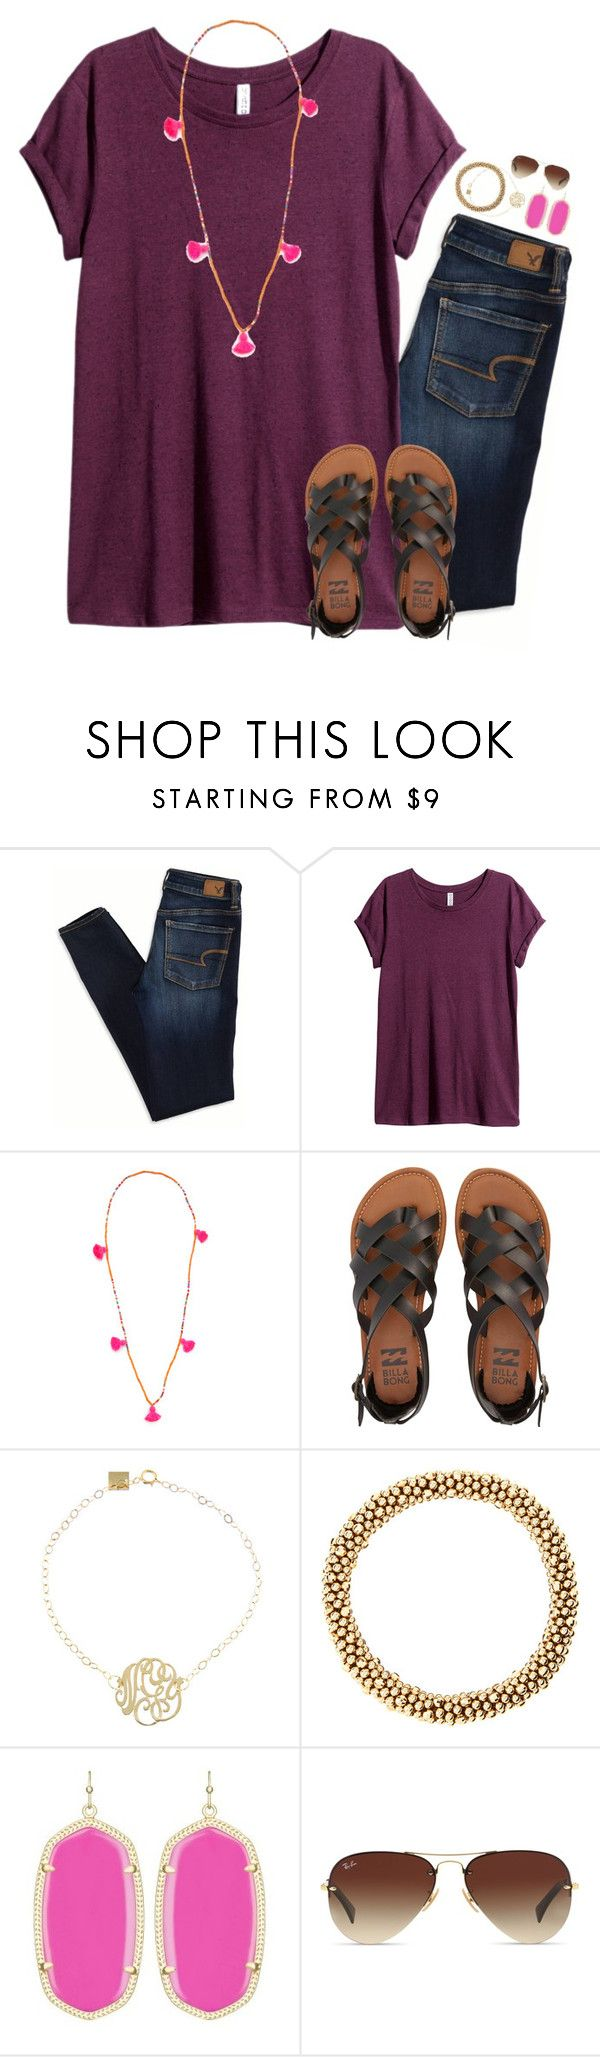 """""""Going to a big picnic with my family and friends☀️"""" by thedancersophie ❤ liked on Polyvore featuring American Eagle Outfitters, H&M, Lead, Billabong, Ginette NY, Meredith Frederick, Kendra Scott and Ray-Ban"""